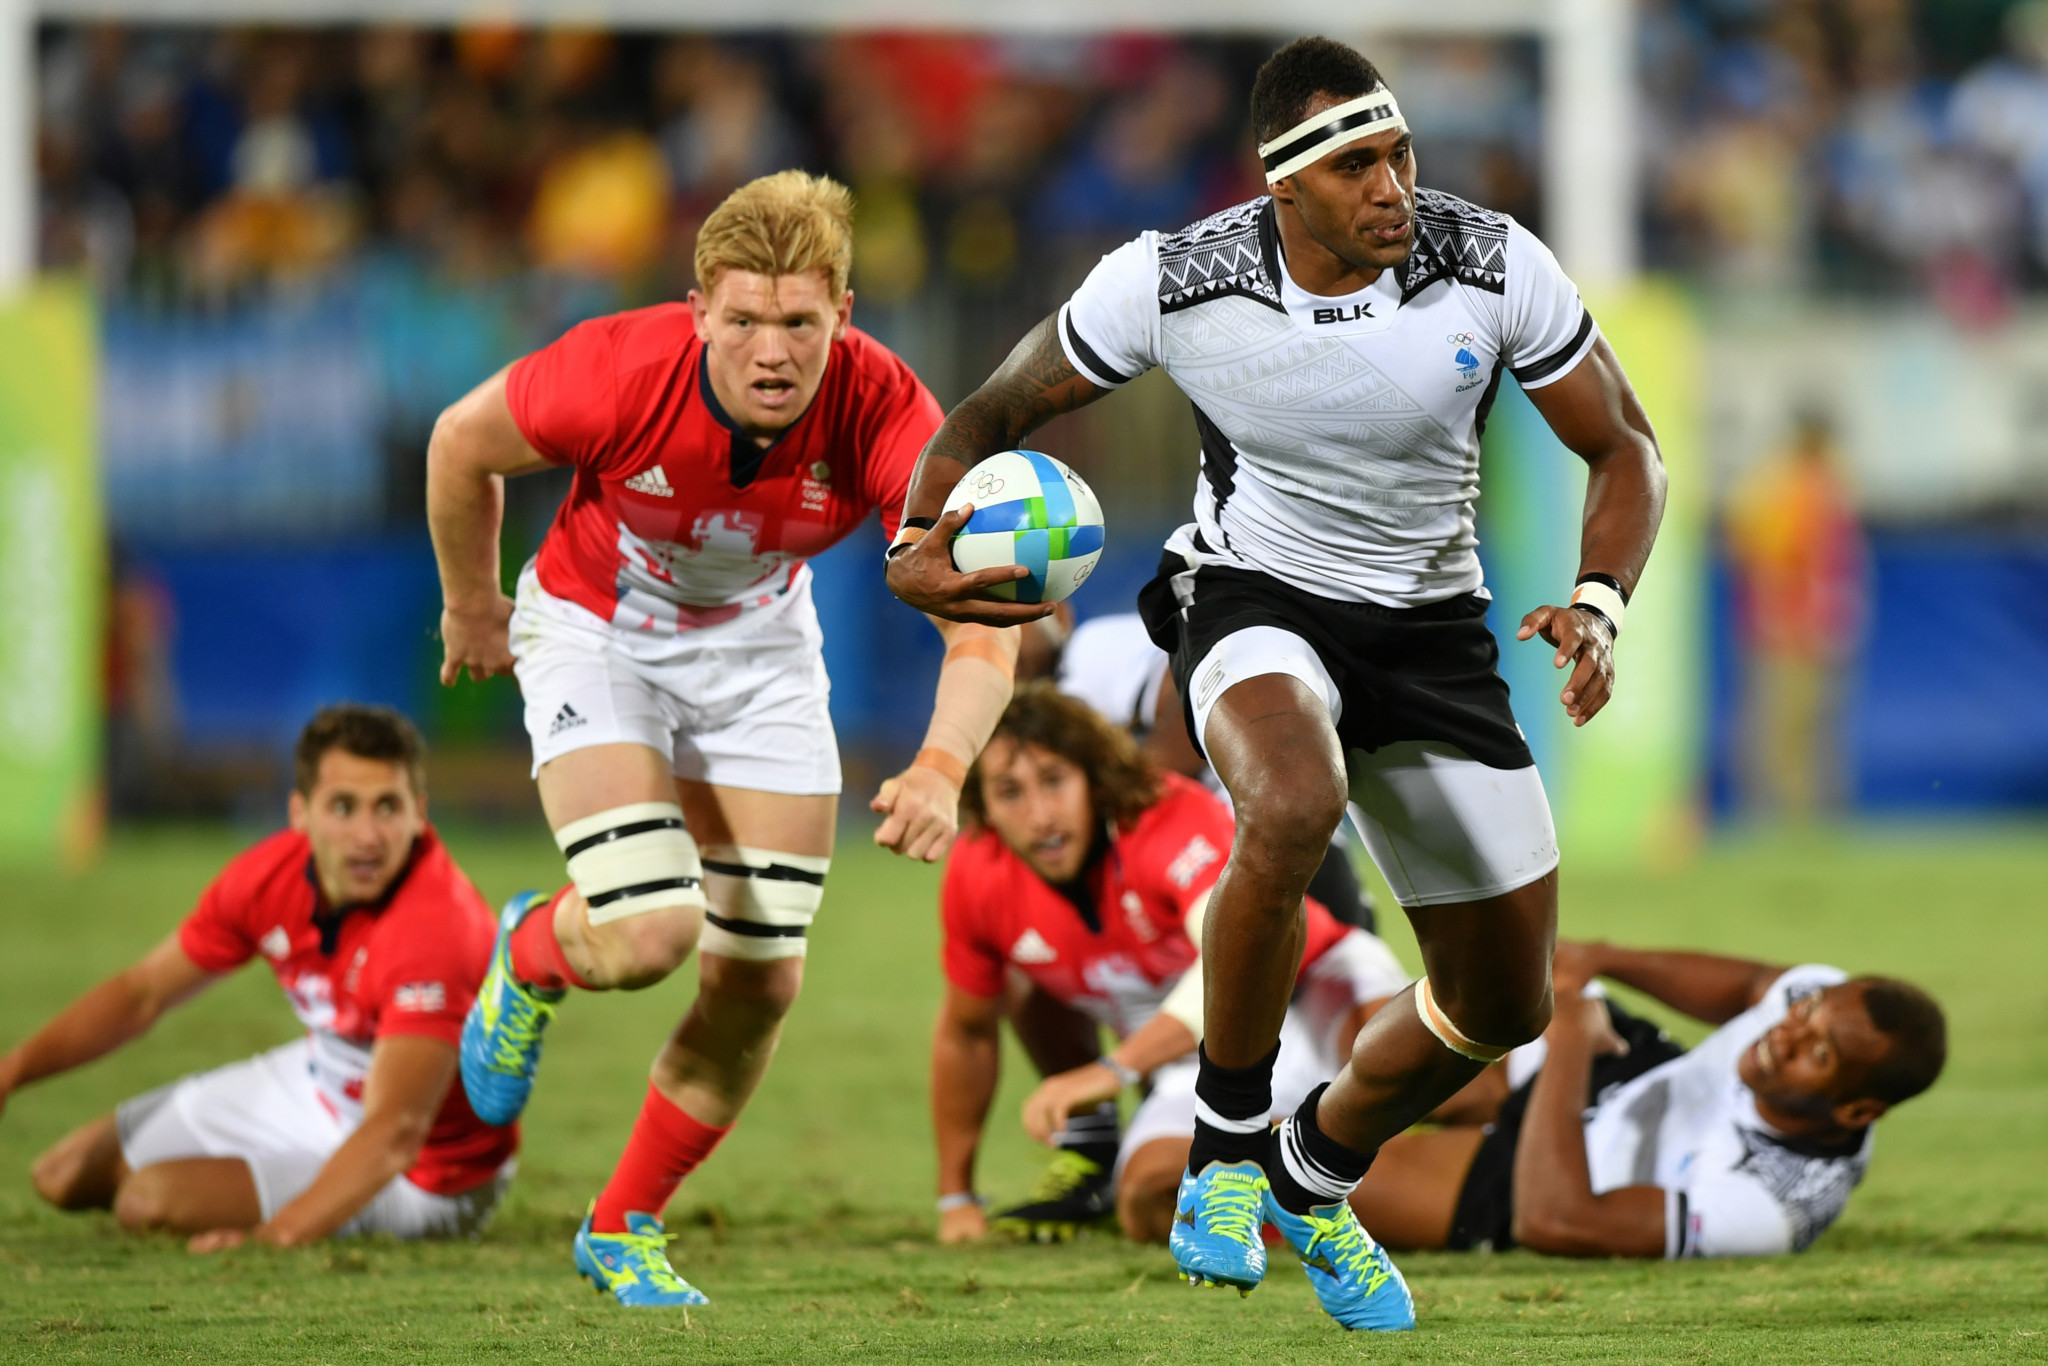 Rio 2016 rugby sevens finalists placed in same pool at Tokyo 2020